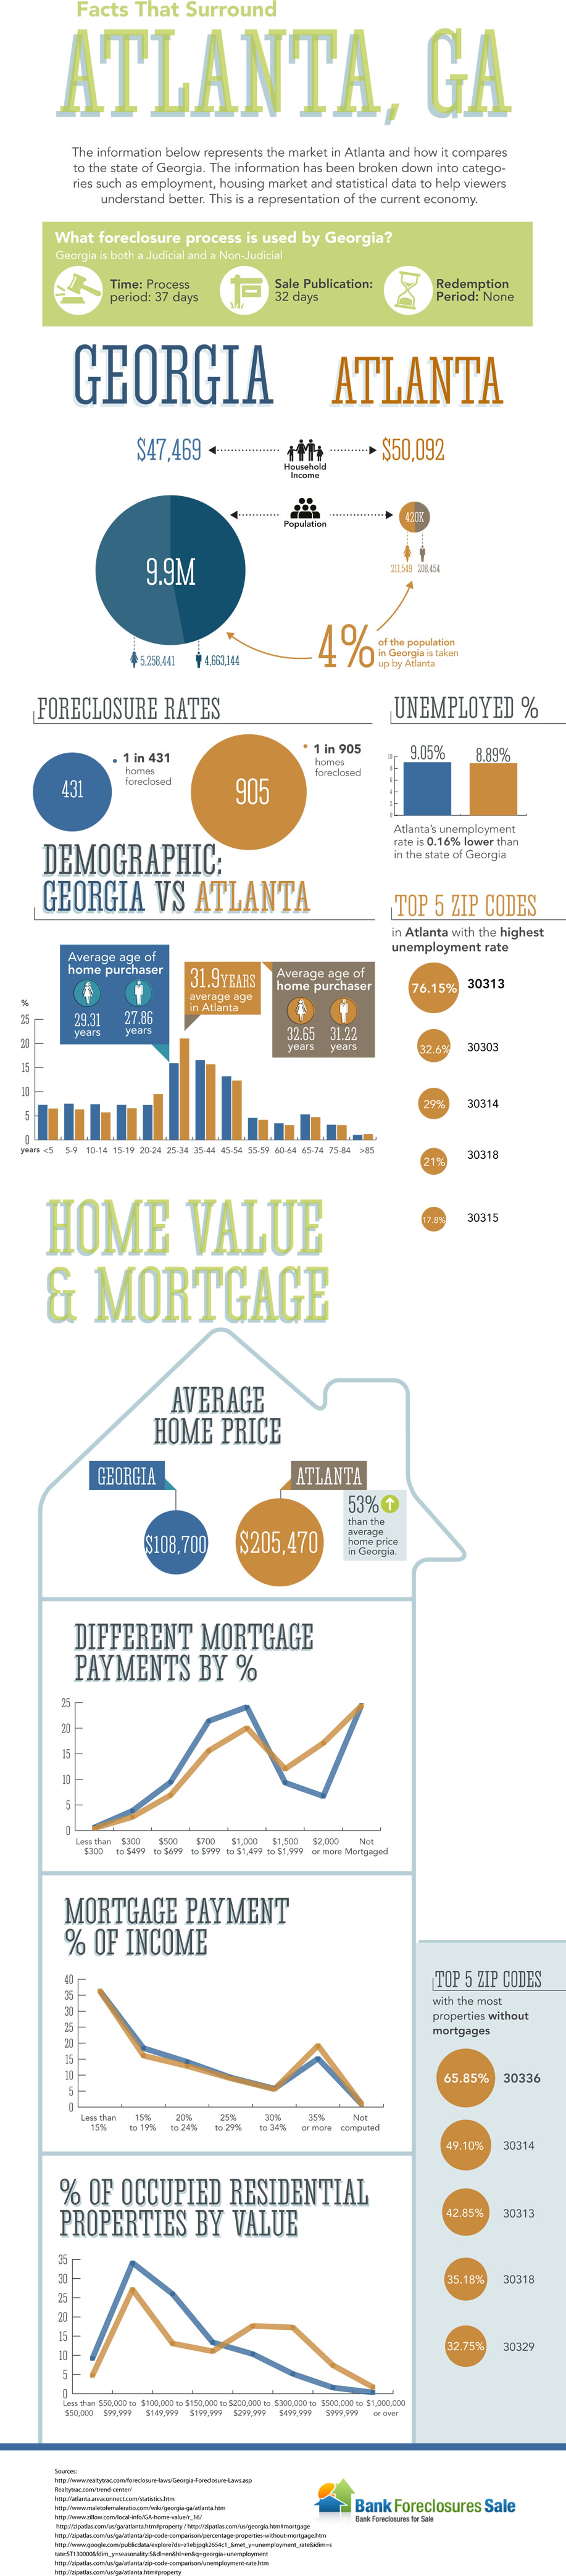 Atlanta, GA Real Estate Infographic at BankForeclosuresSale.com